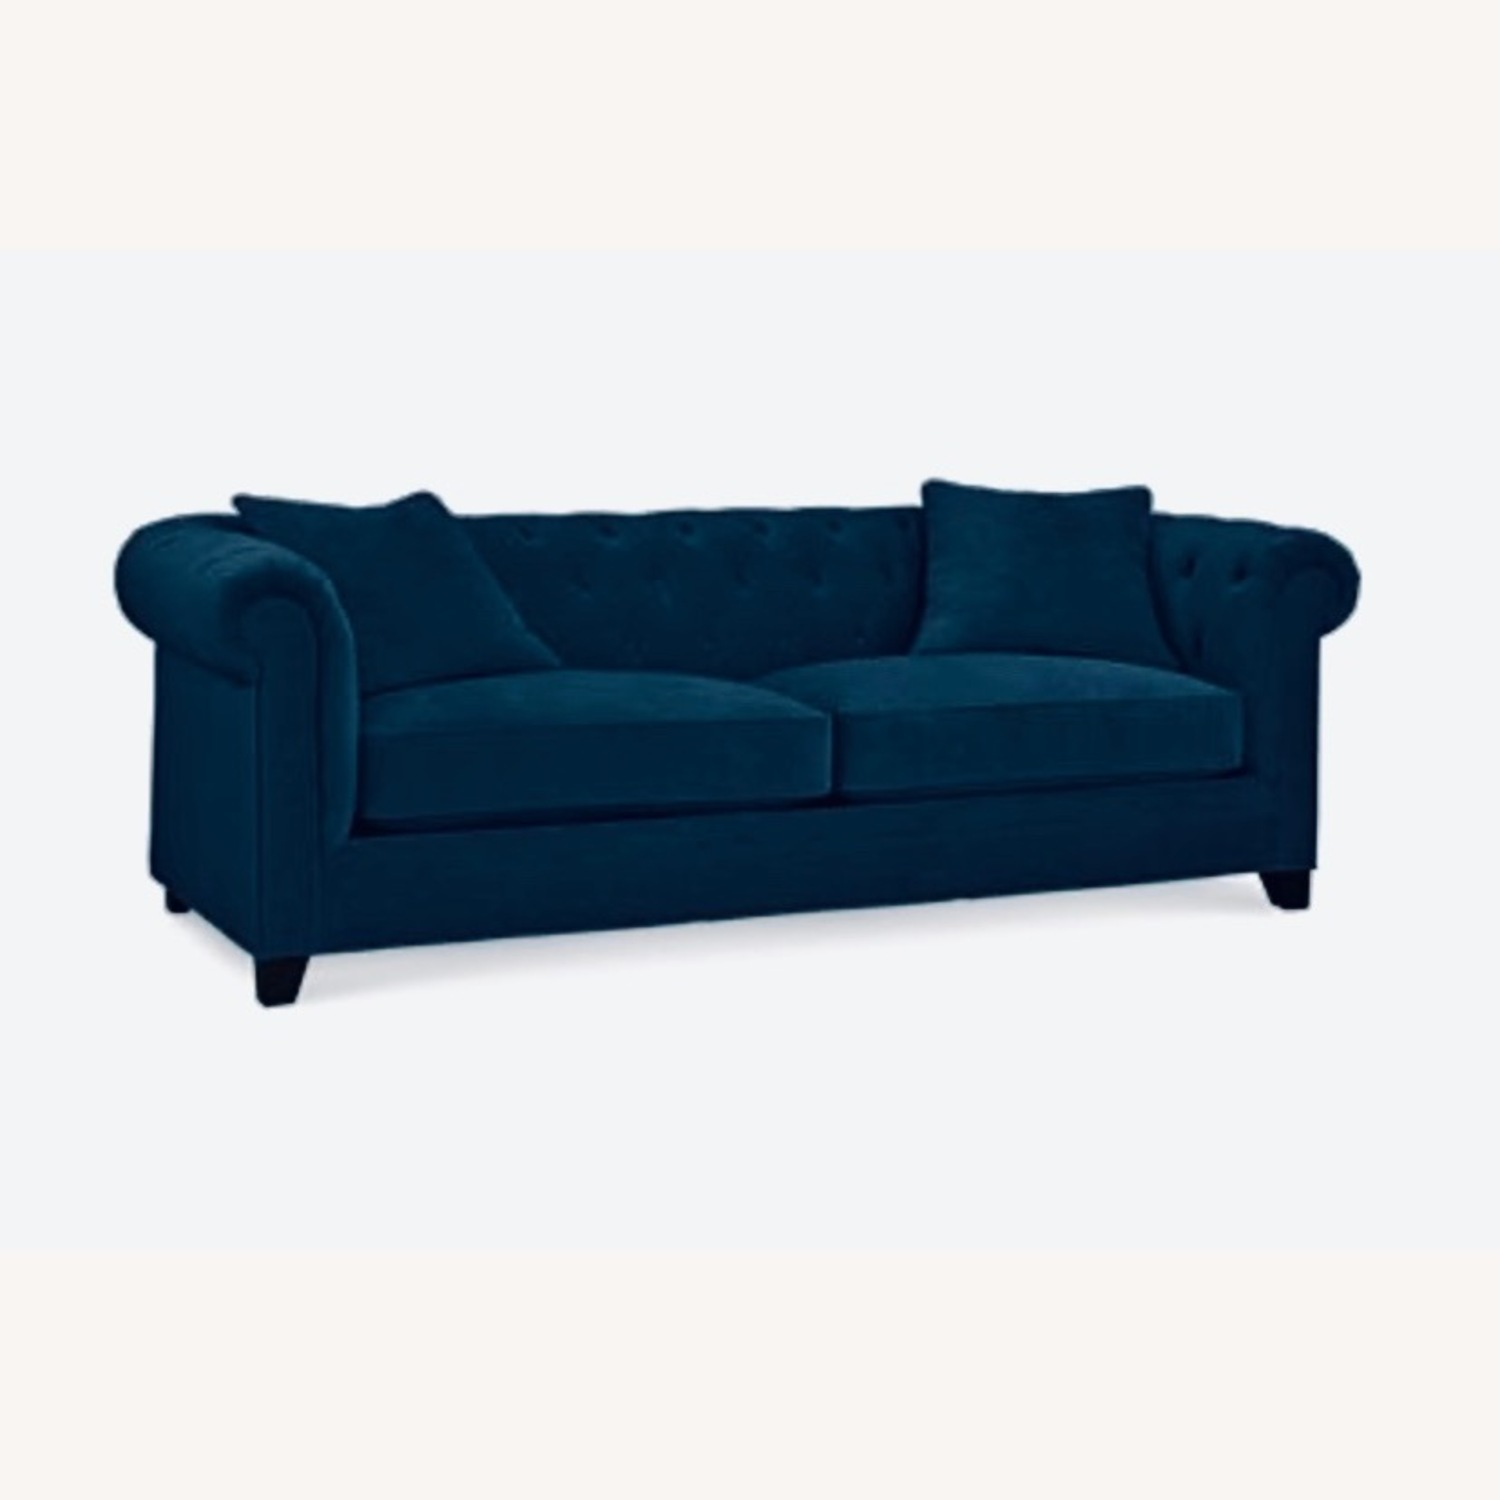 Macy's Martha Stewart Collection Navy Couch - image-1